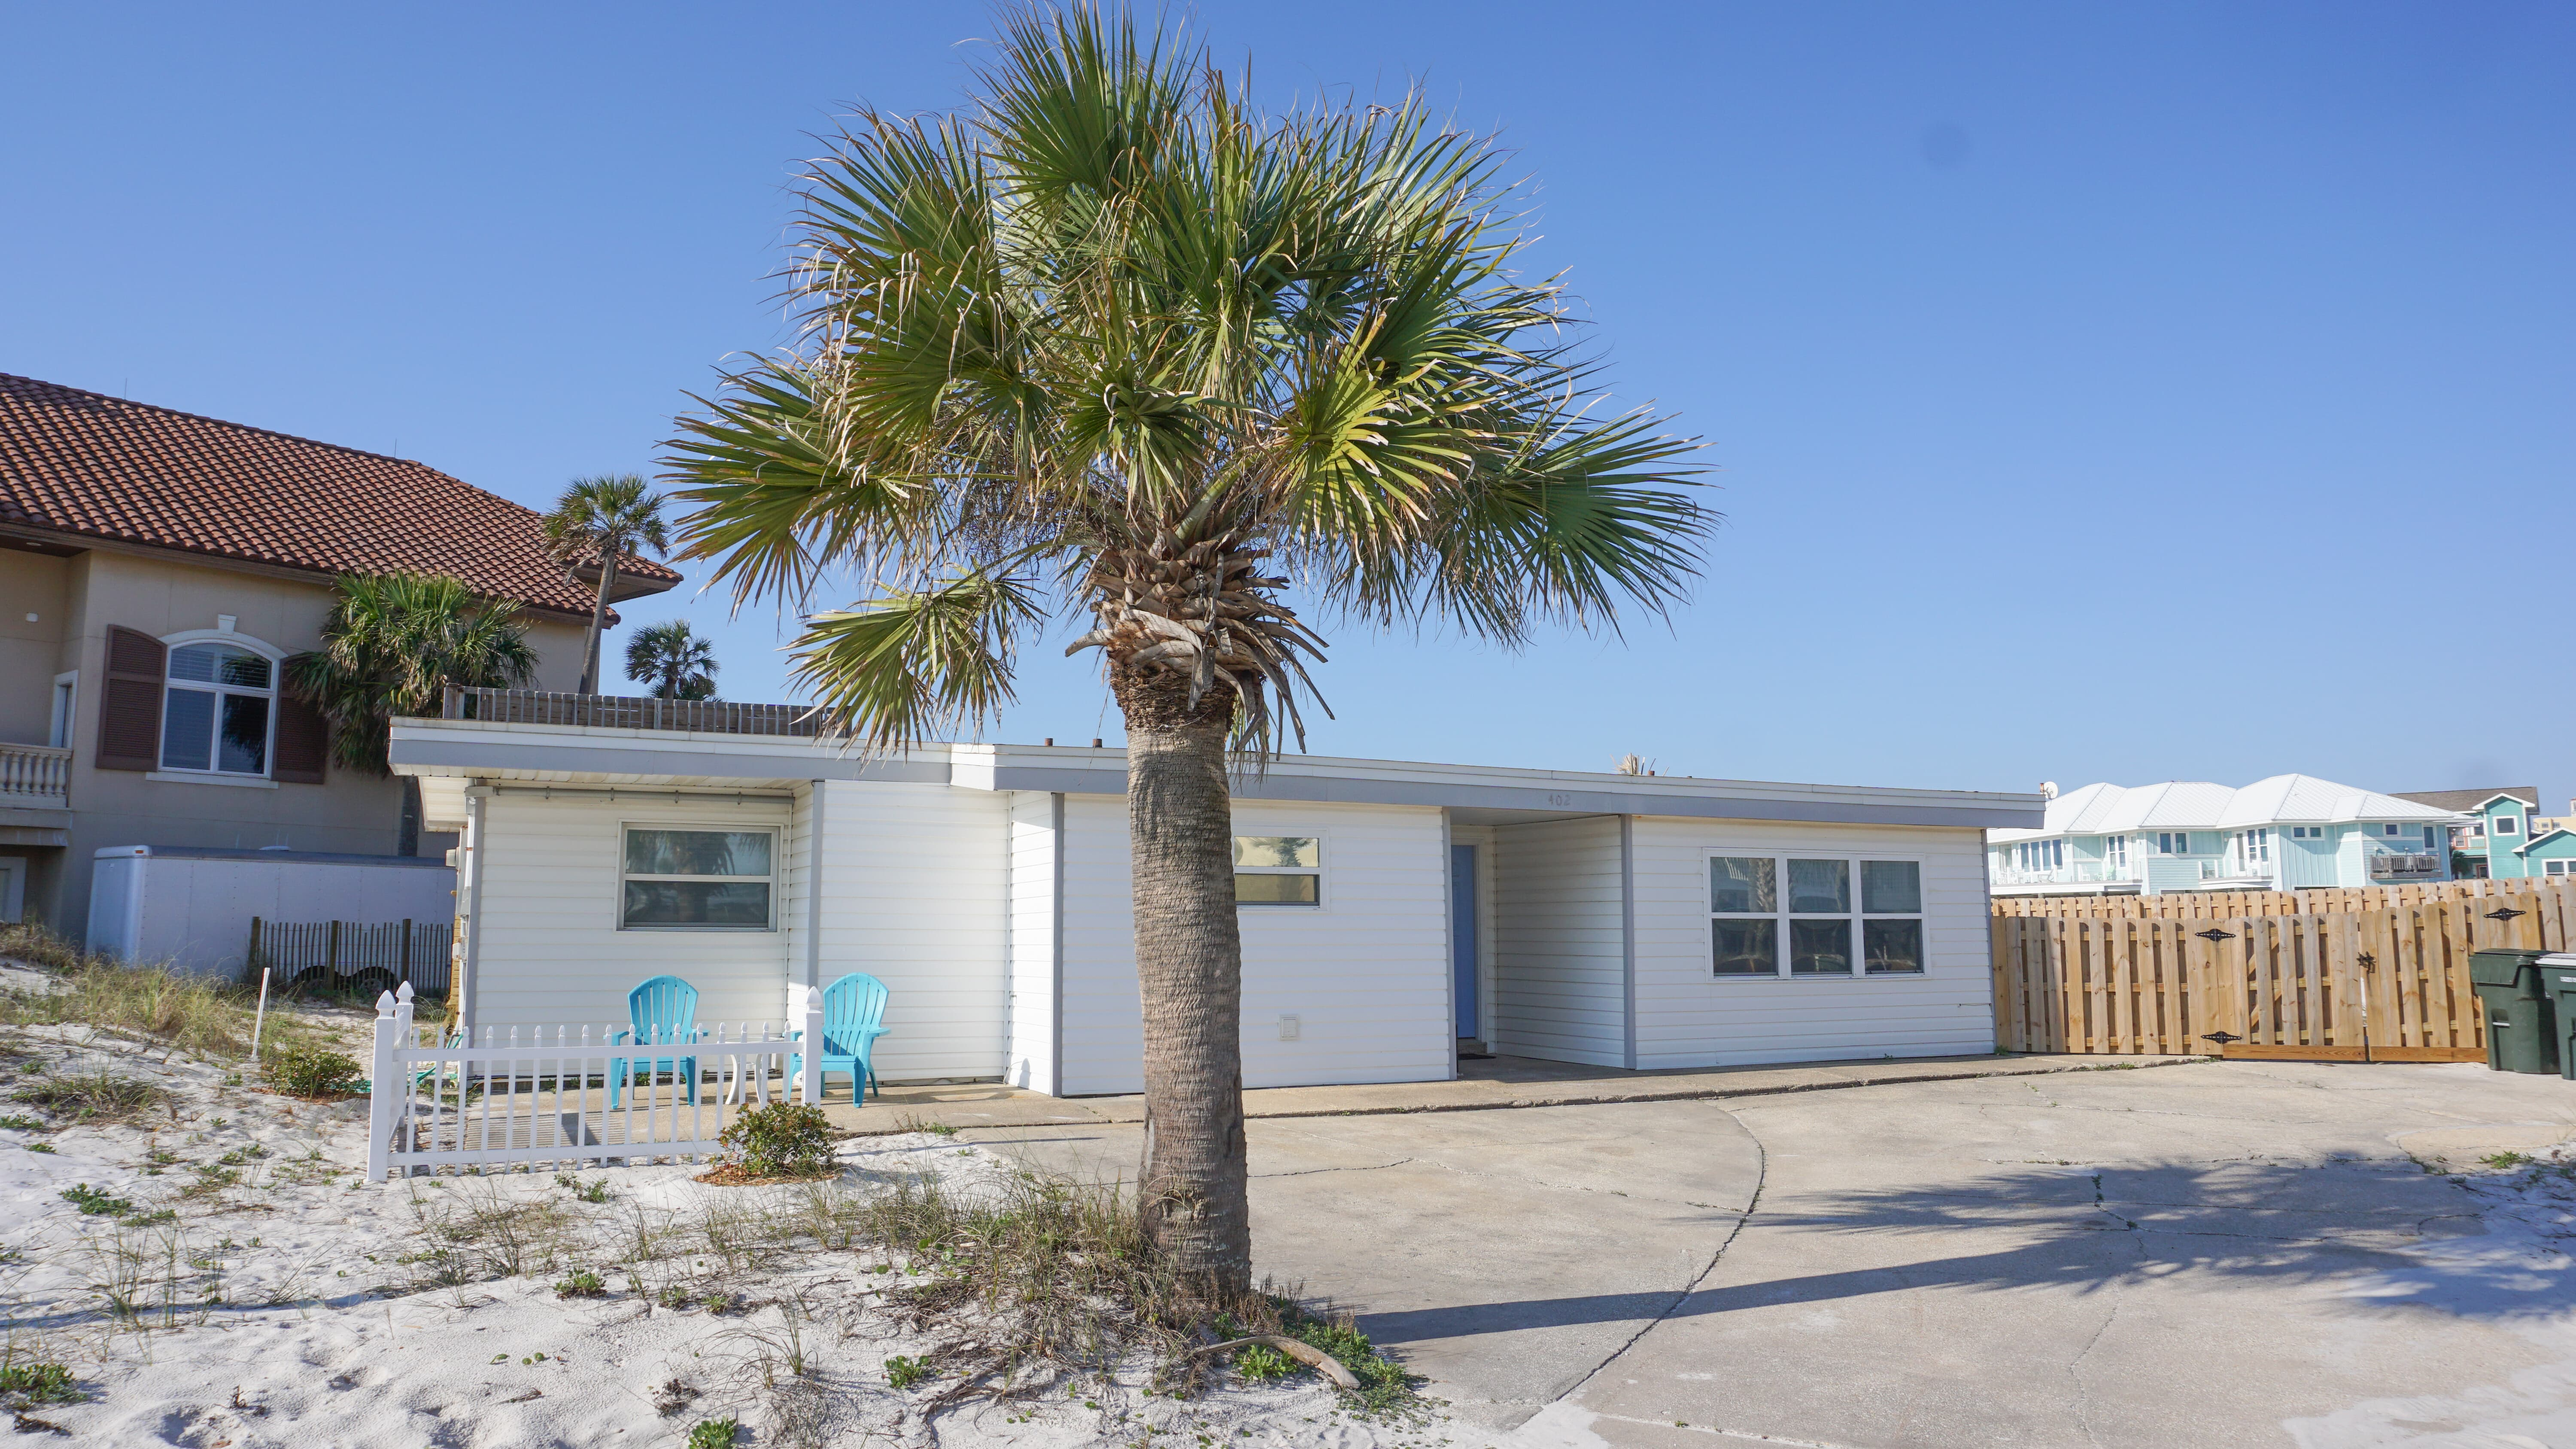 Avenida 14 - 402 House / Cottage rental in Pensacola Beach House Rentals in Pensacola Beach Florida - #2